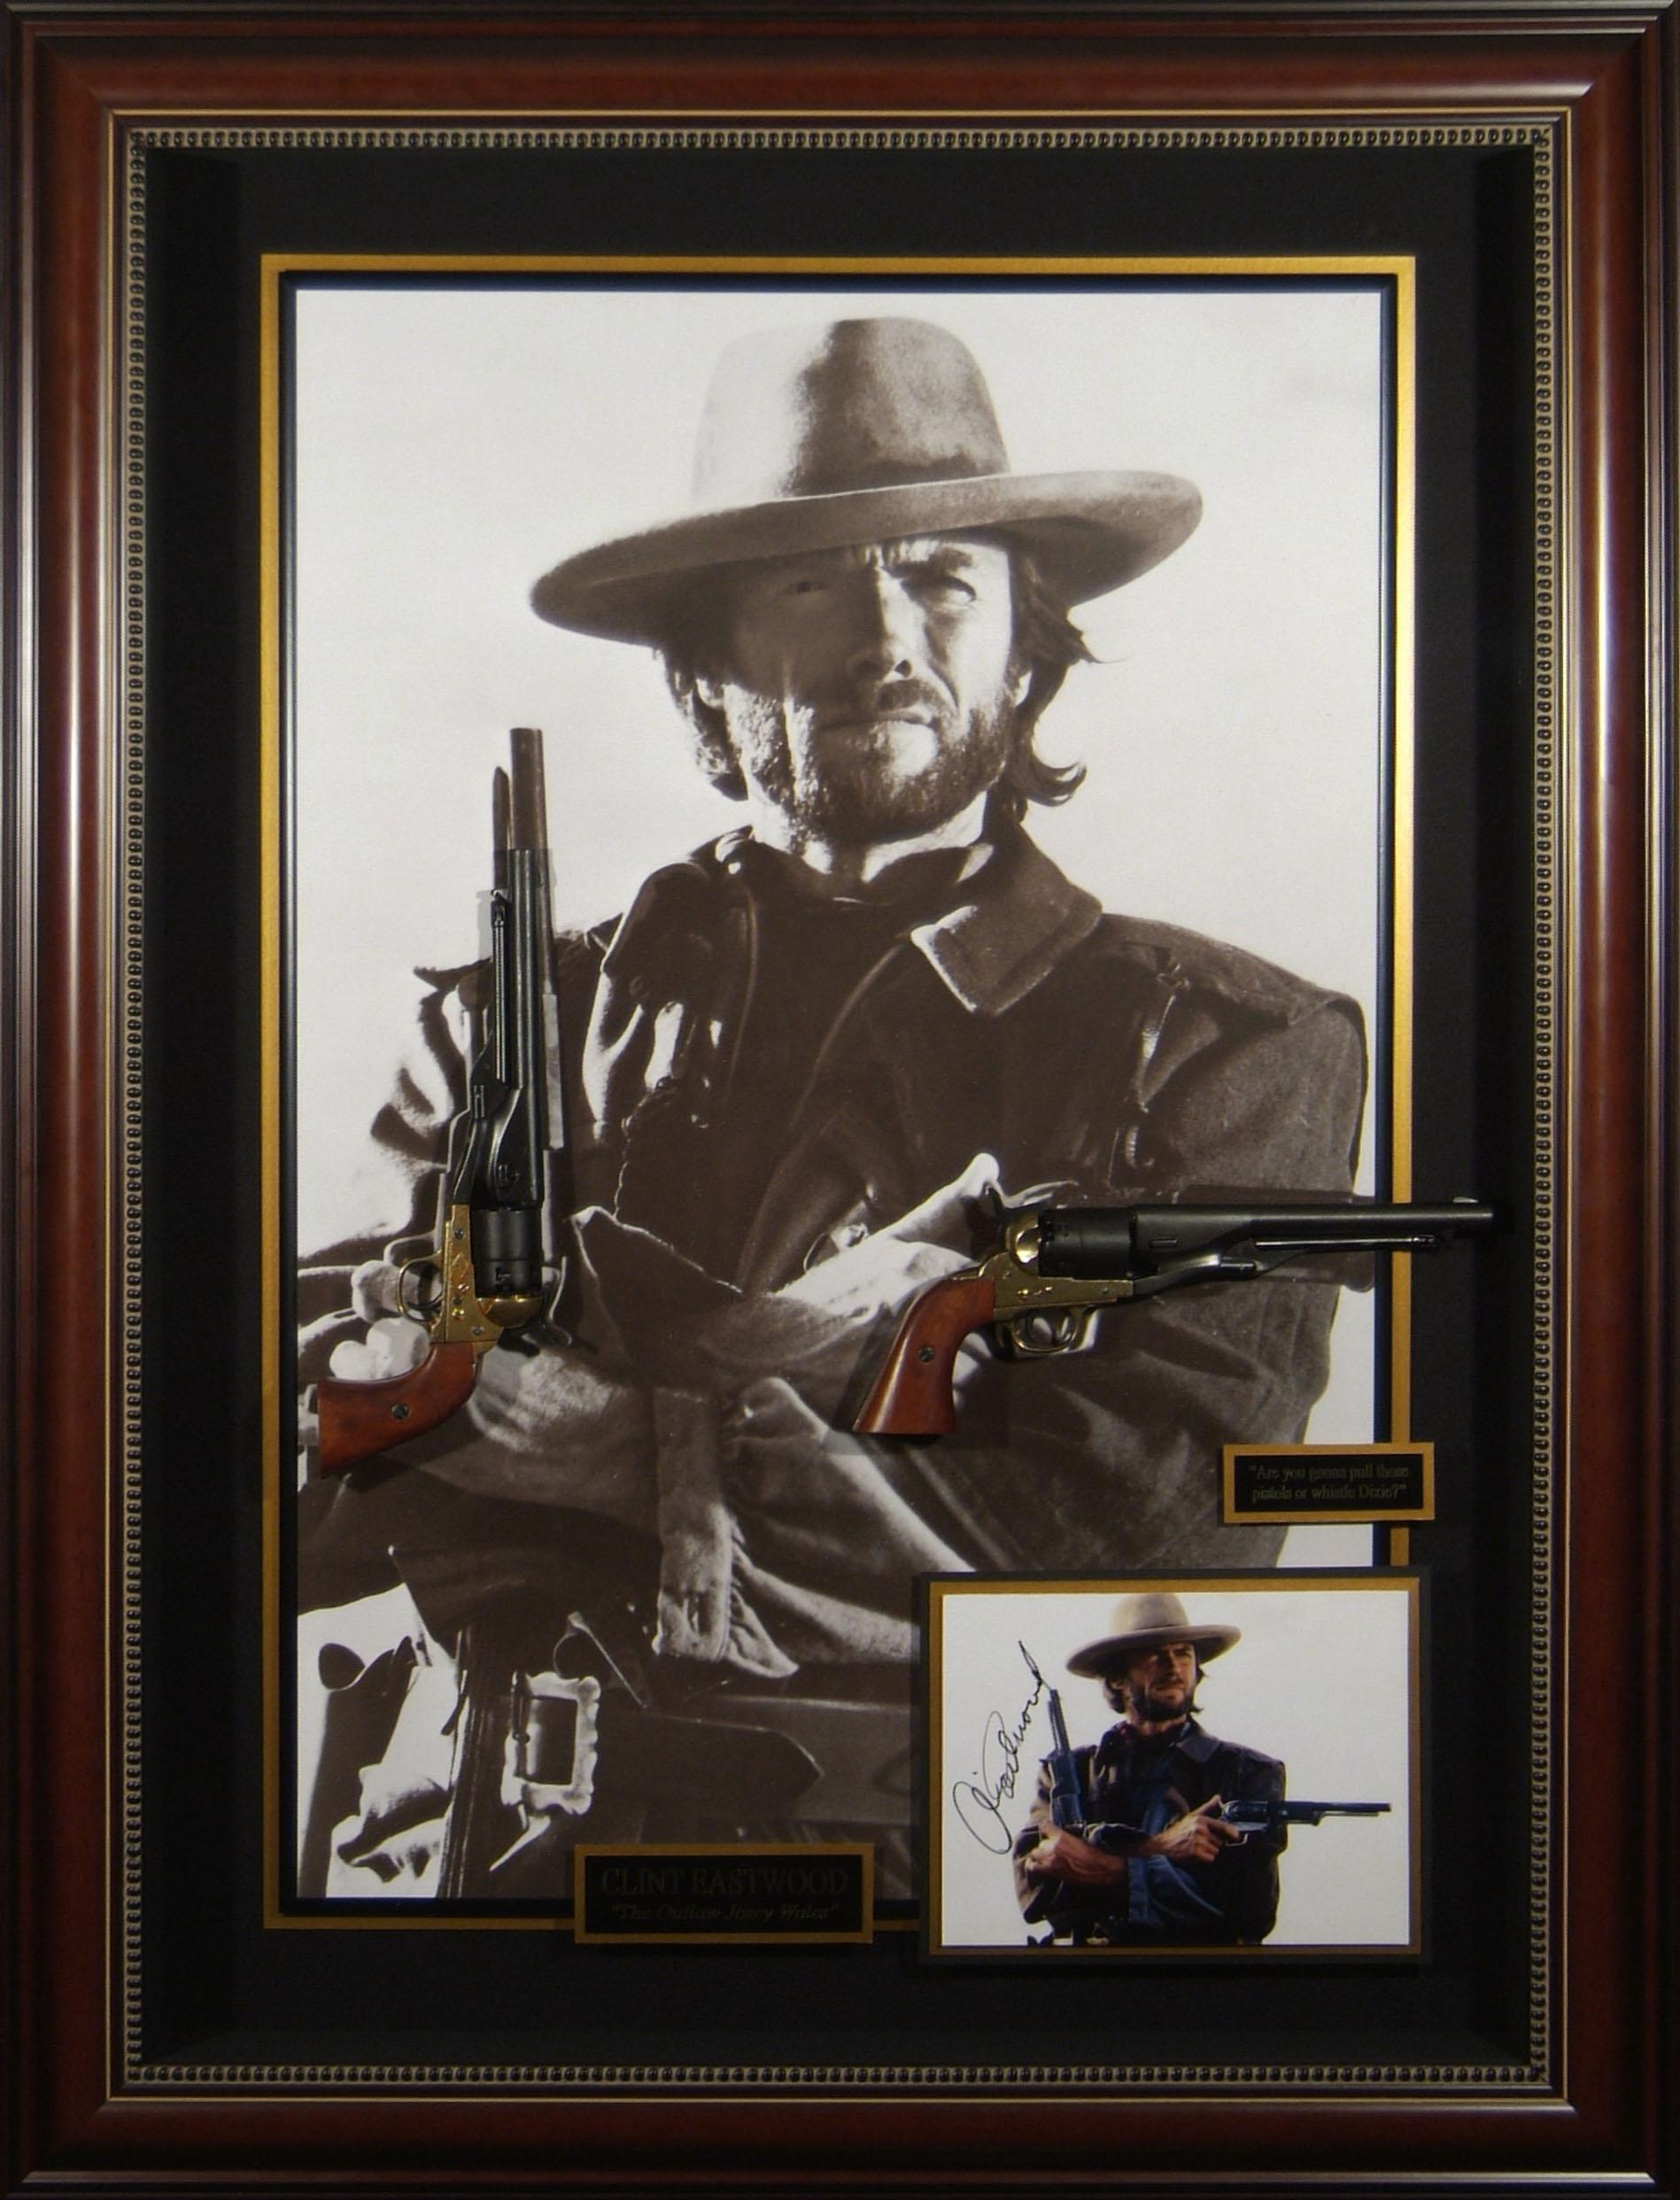 Outlaw Josey Wales Clint Eastwood Autographed Movie Display